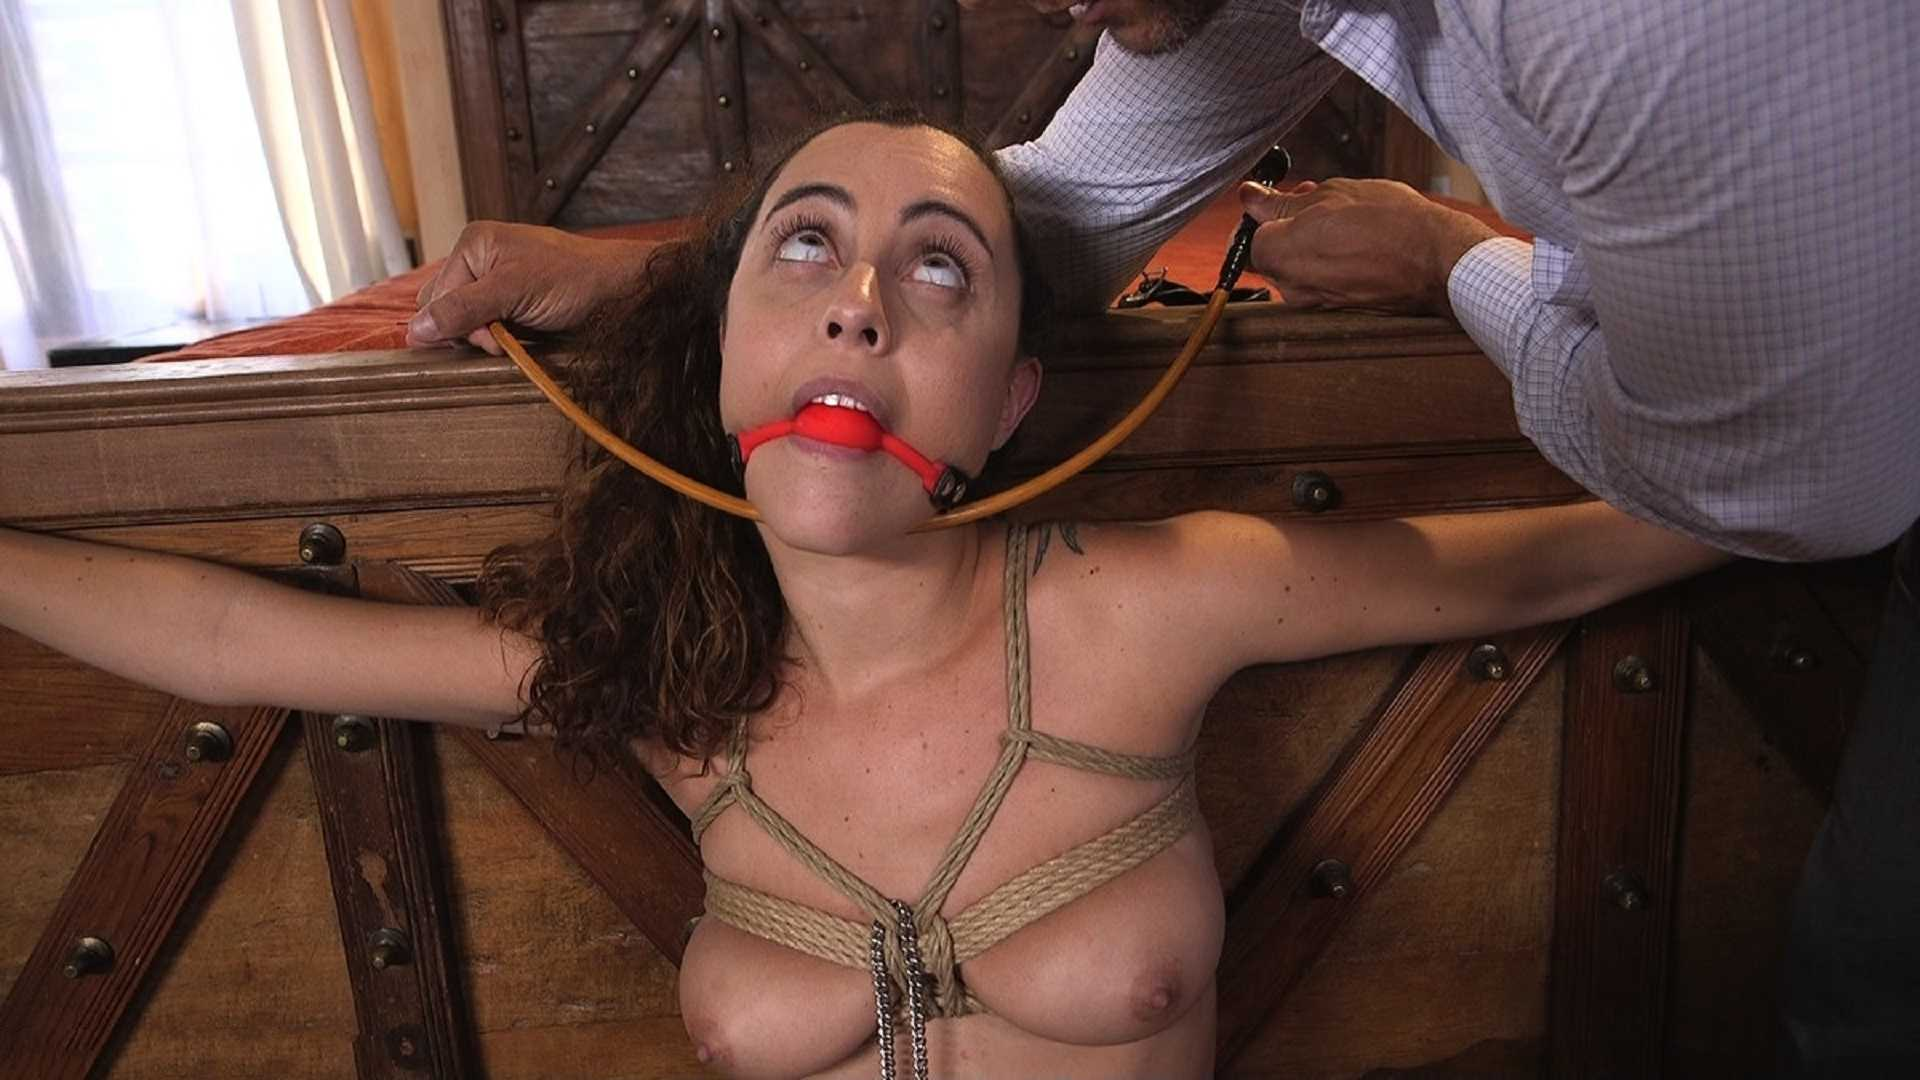 Shy College Slut, Roxanne Rae, Gets Ass Fucked in Tight Rope Bondage | Full HD 1080p | August 1, 2017